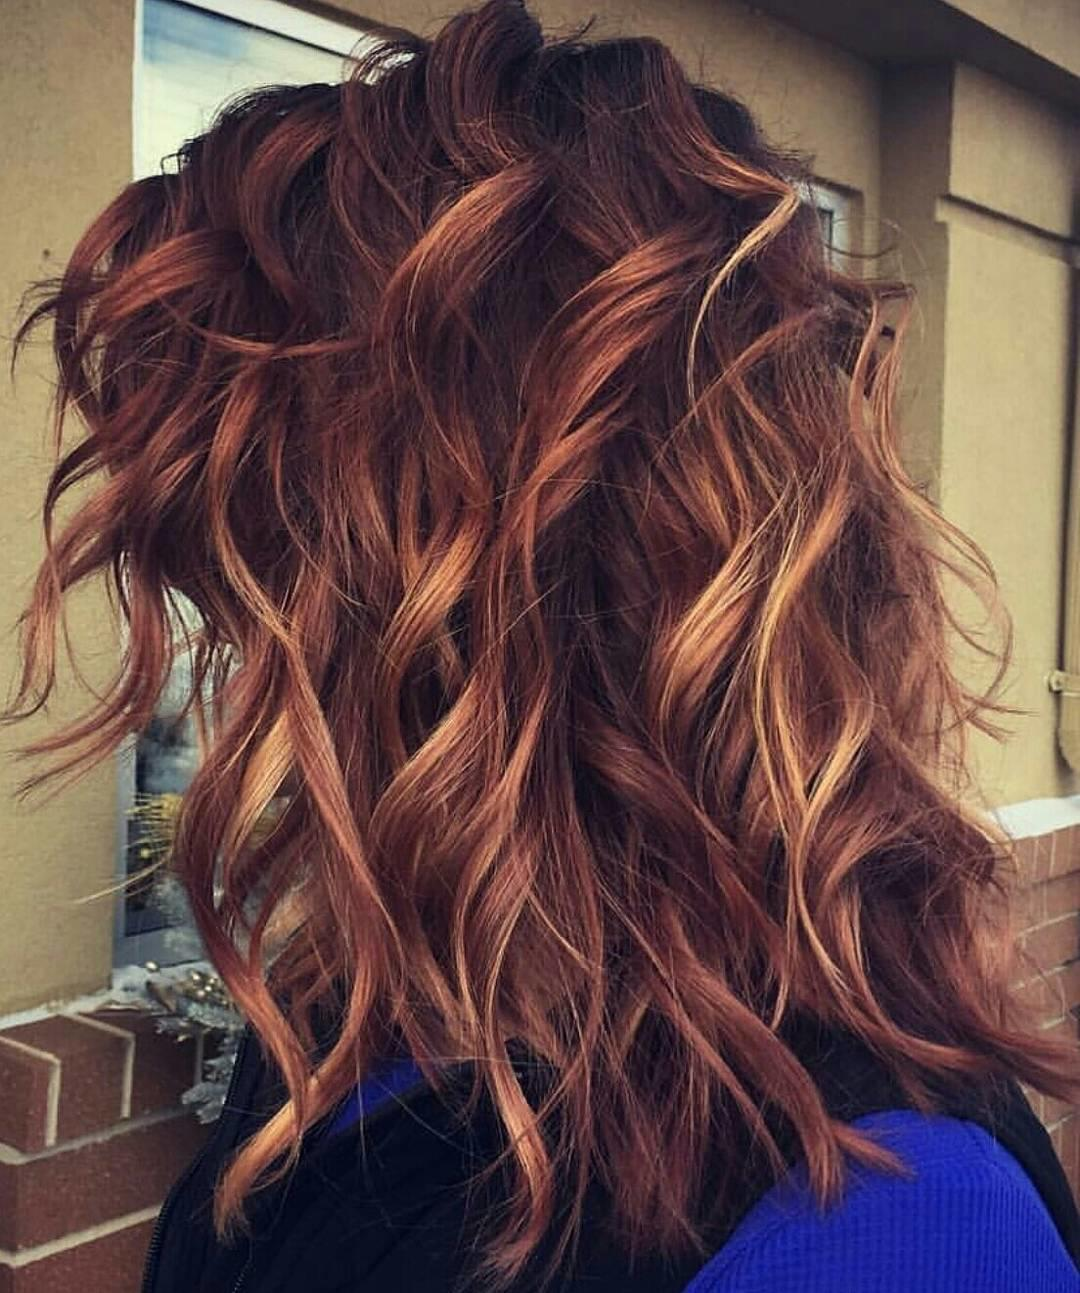 The Best 10 Medium Length Hairstyles For Thick Hair In Super S*Xy Pictures